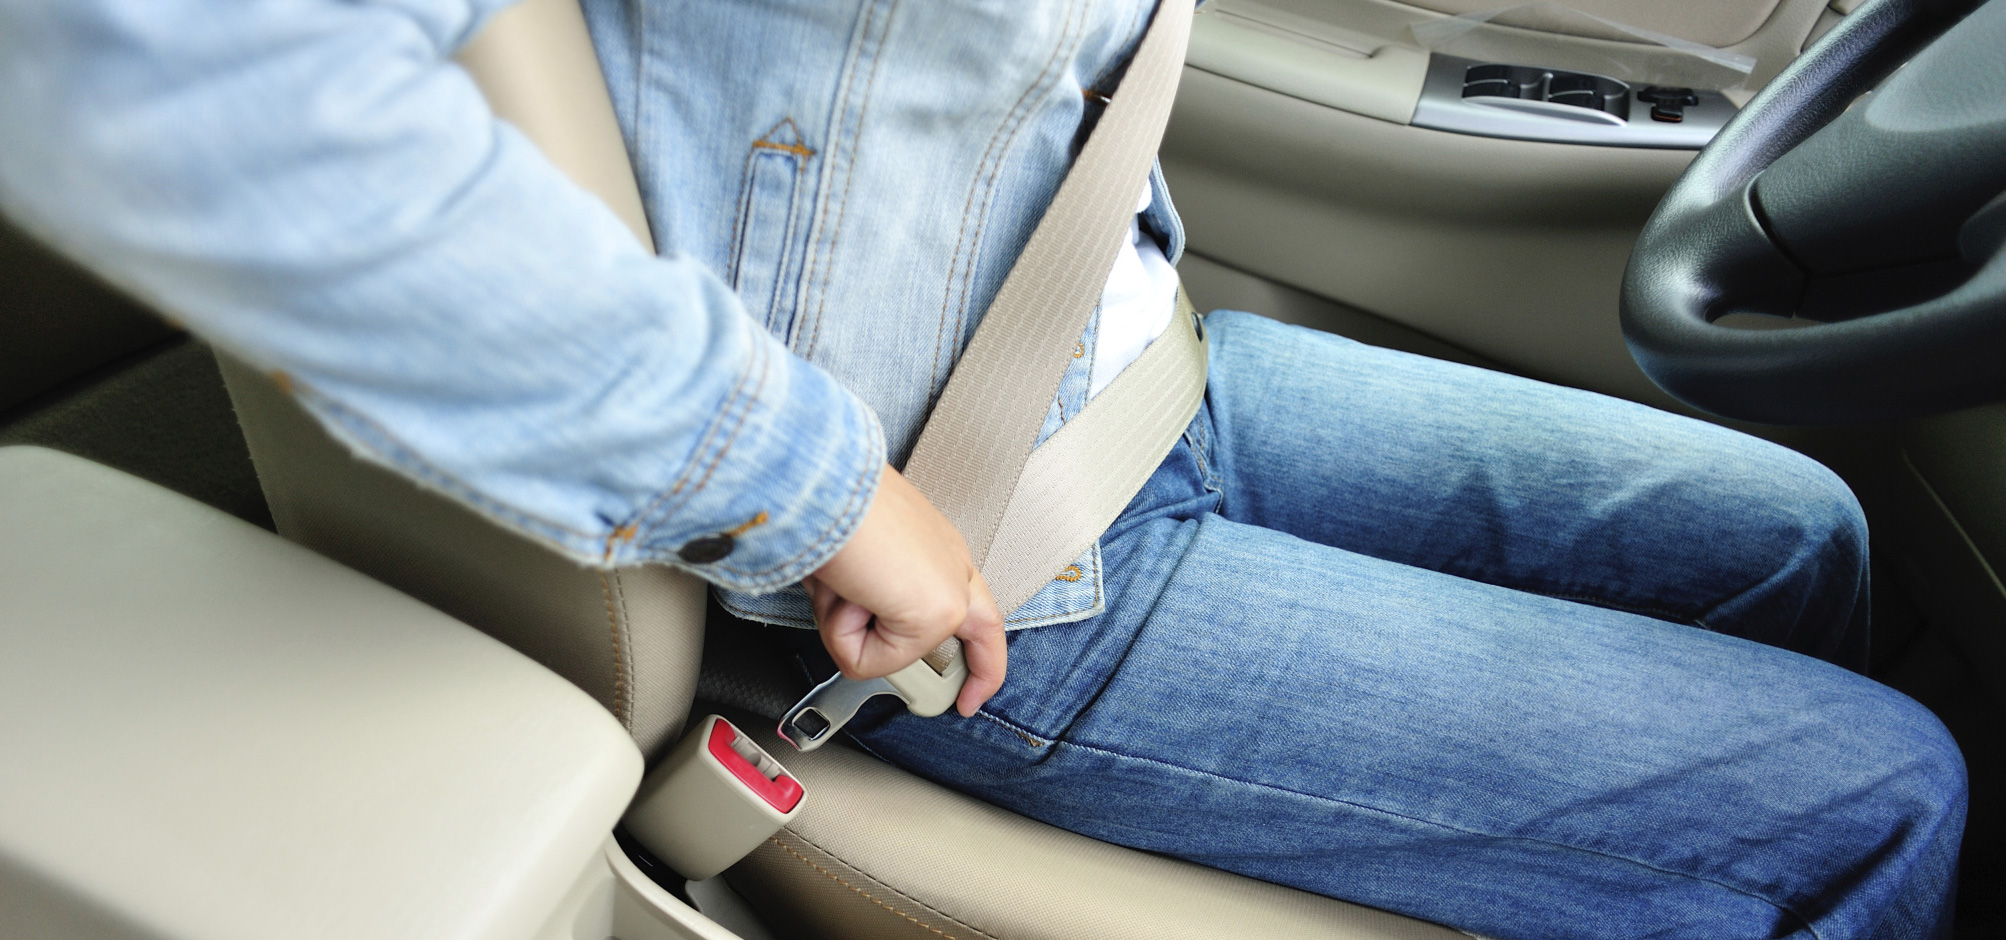 seat belt and people Everyone knows they should wear a seat belt in the front seat, but many people still don't realise how dangerous it is not to wear a seat belt in the back.